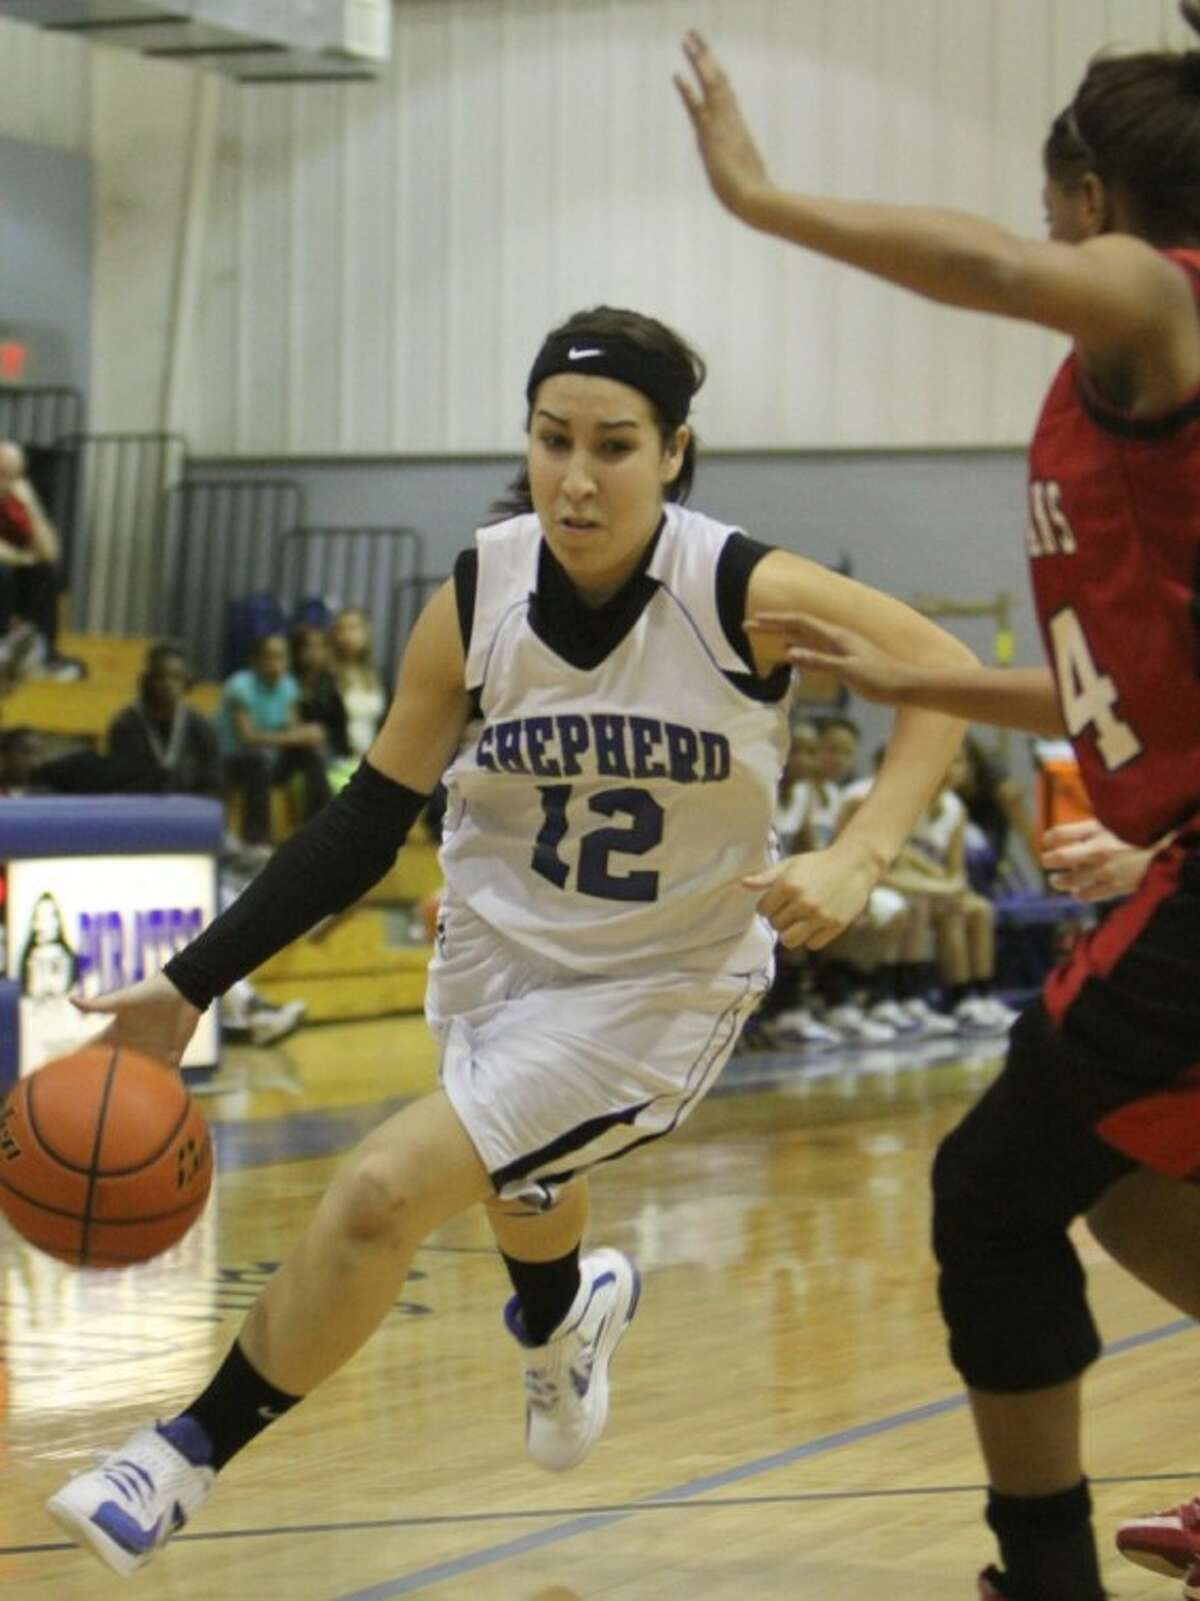 Casey Gamez (12) of Shepherd drives the ball. The seniors was named to the all-district first team.